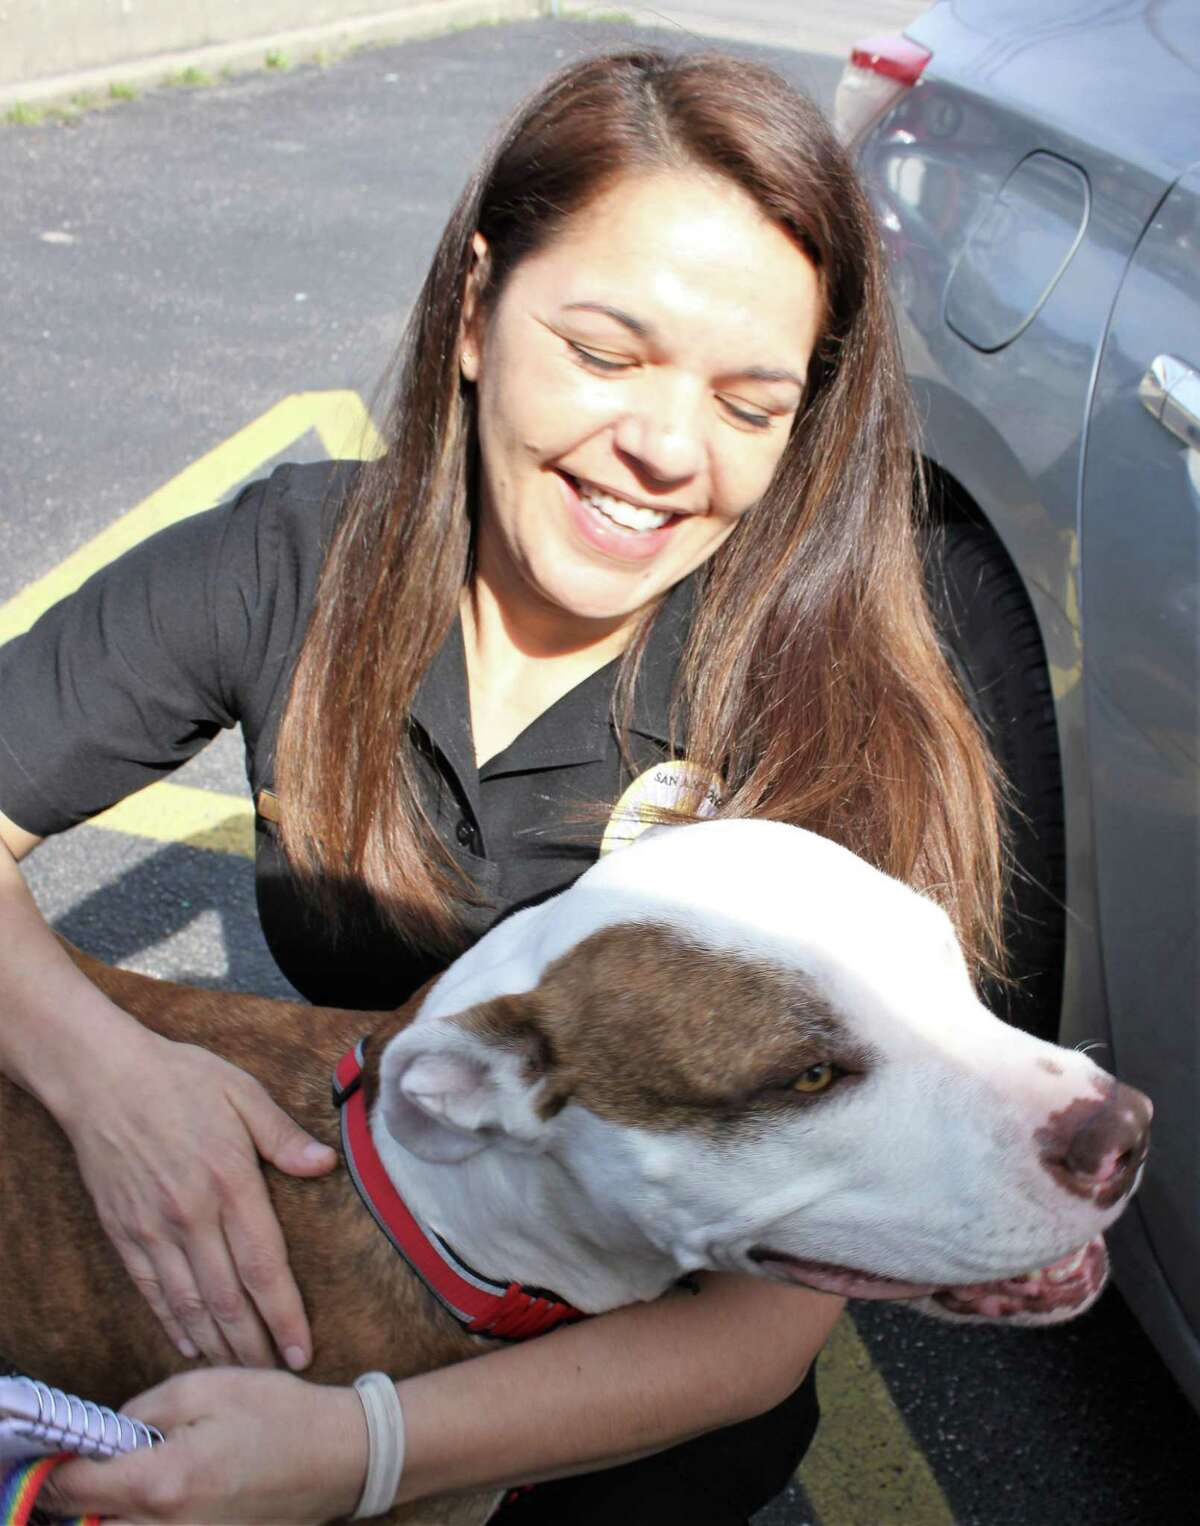 Animal Care Services supervisor Aimee Decontreras greets Trixie, a a female Staffordshire bull terrier, whowent missing from her home in Austin on Christmas Eve. Trixie was brought to Animal Care Services in early February as a roaming dog. An unidentified man walked into the kennel and led her to his car. Regina Briskeyand her boyfriend found Trixie at a North Side service station and brought her to a veterinary clinic that found a microchip that led to her being reunited wither owner AngelOntiveros.